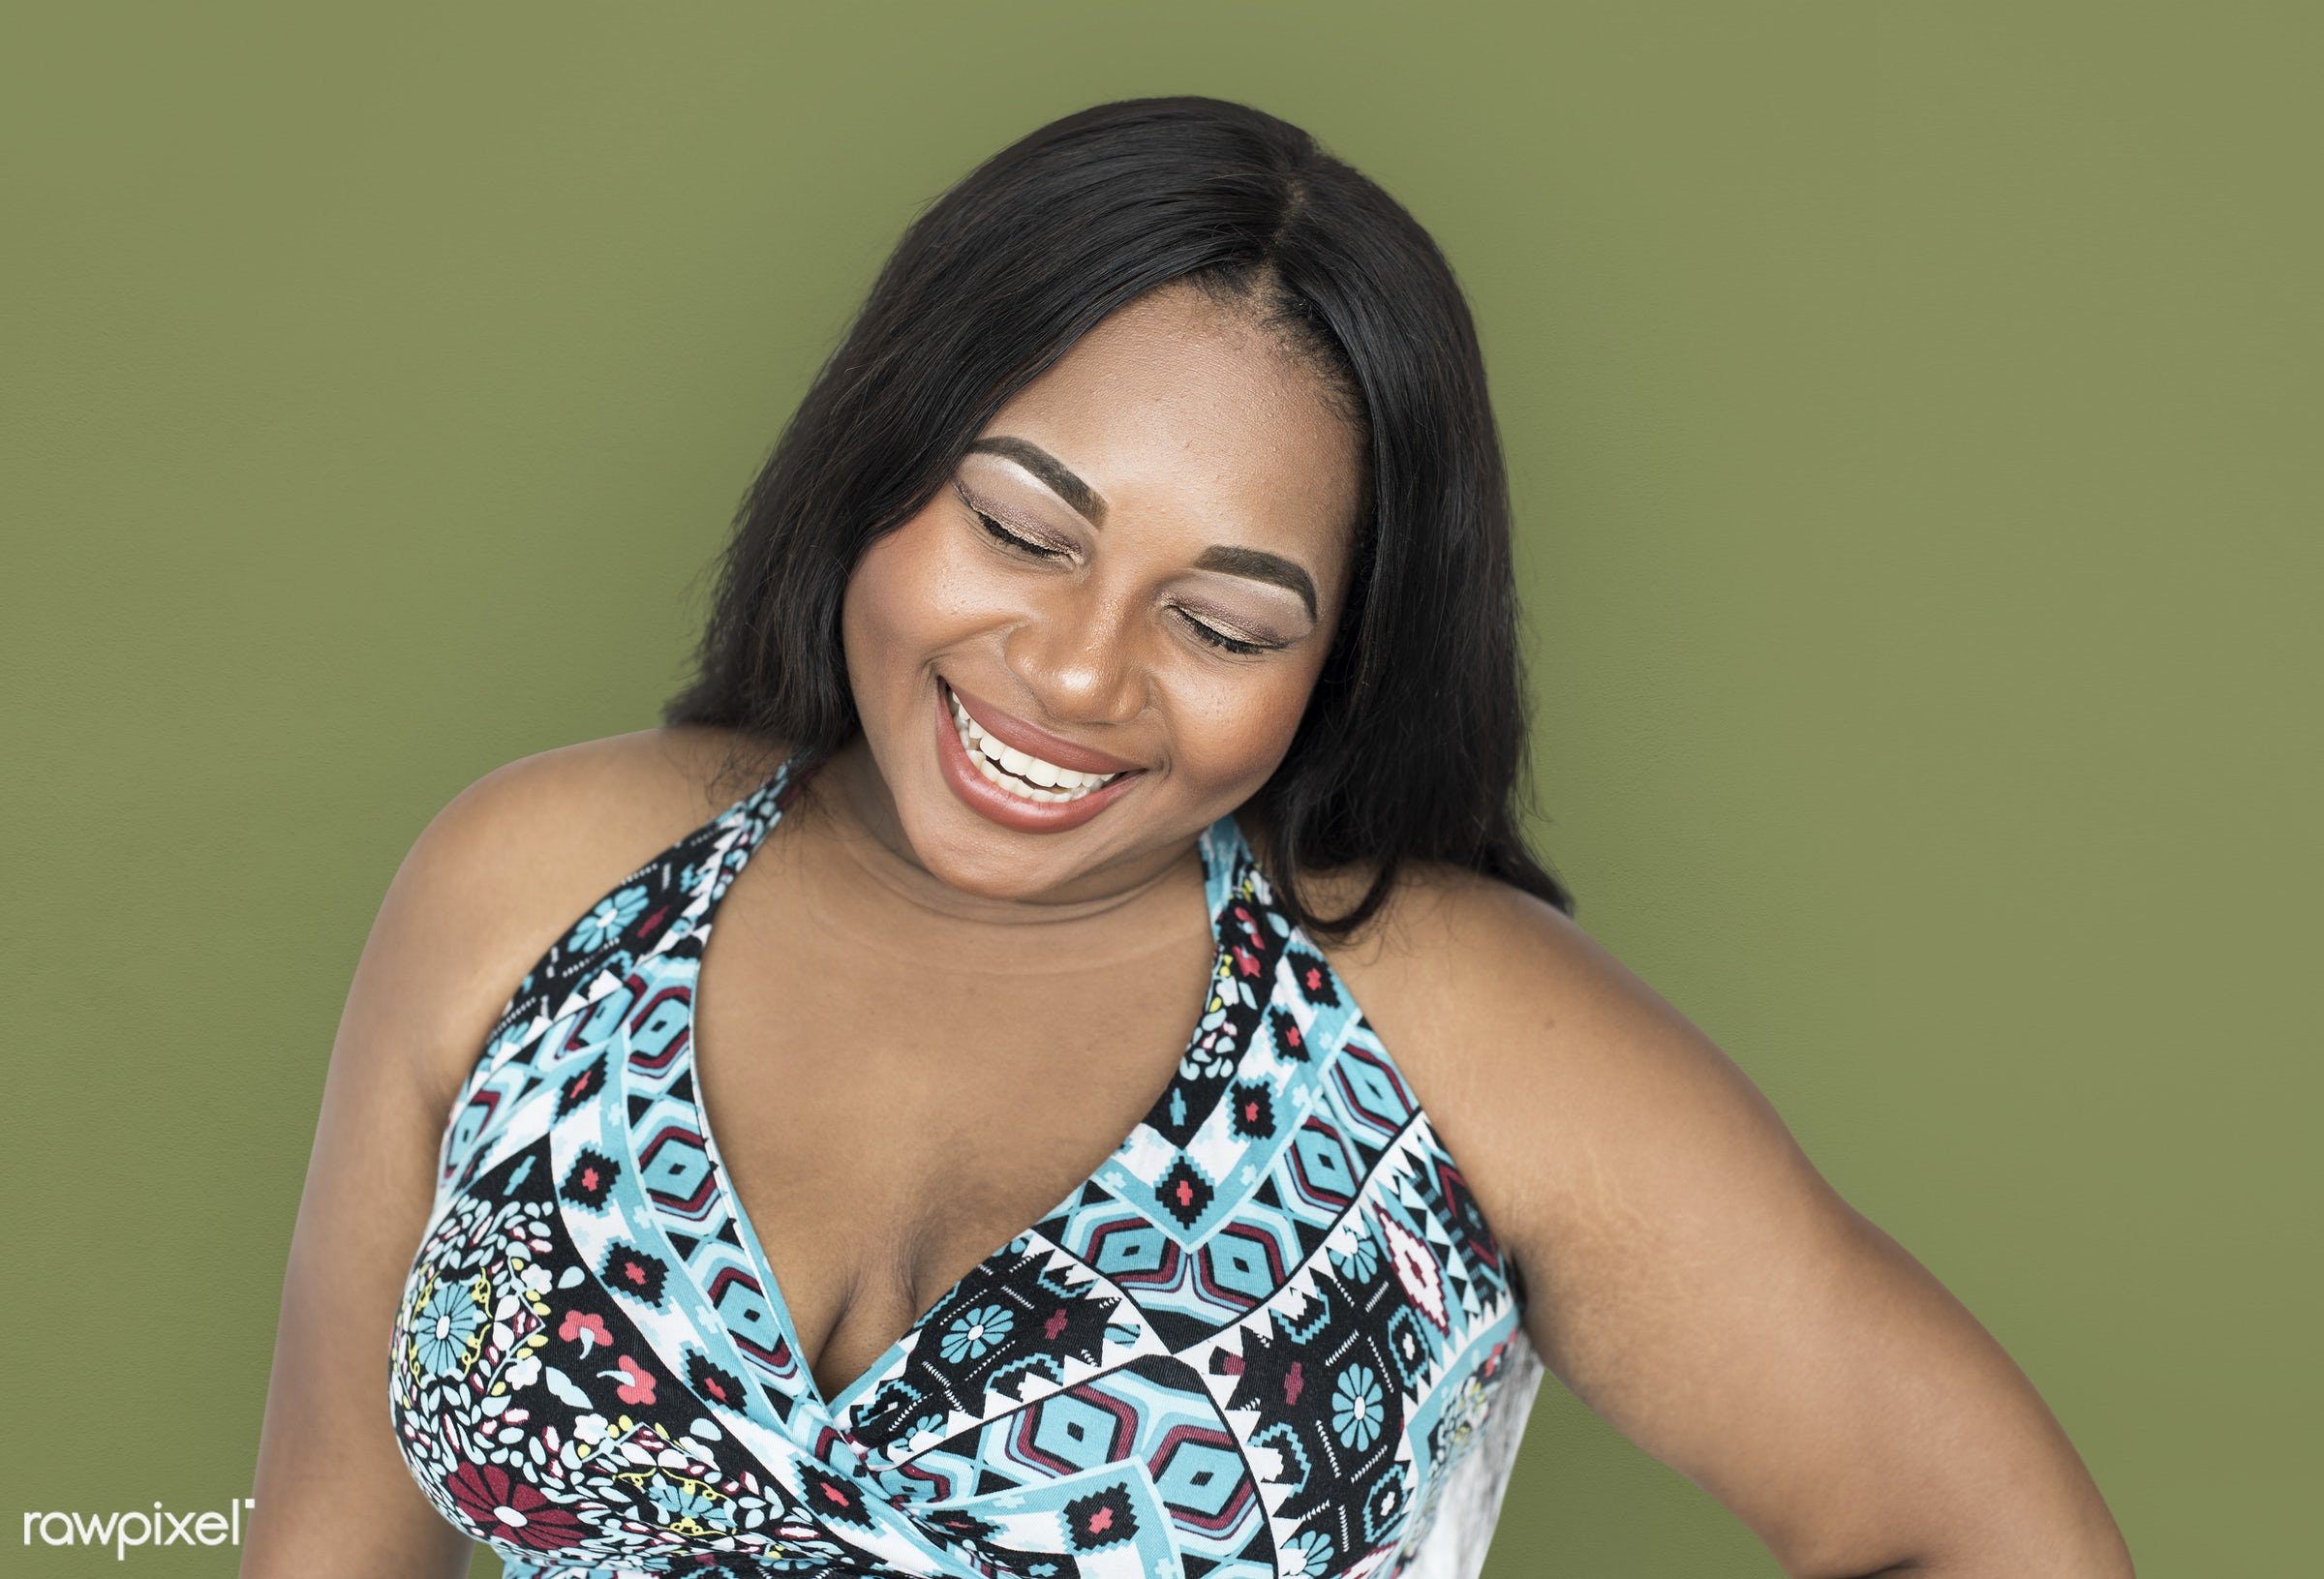 studio, expression, model, person, freedom, african ethnicity, relax, chubby, optimistic, people, laughing, woman, casual,...